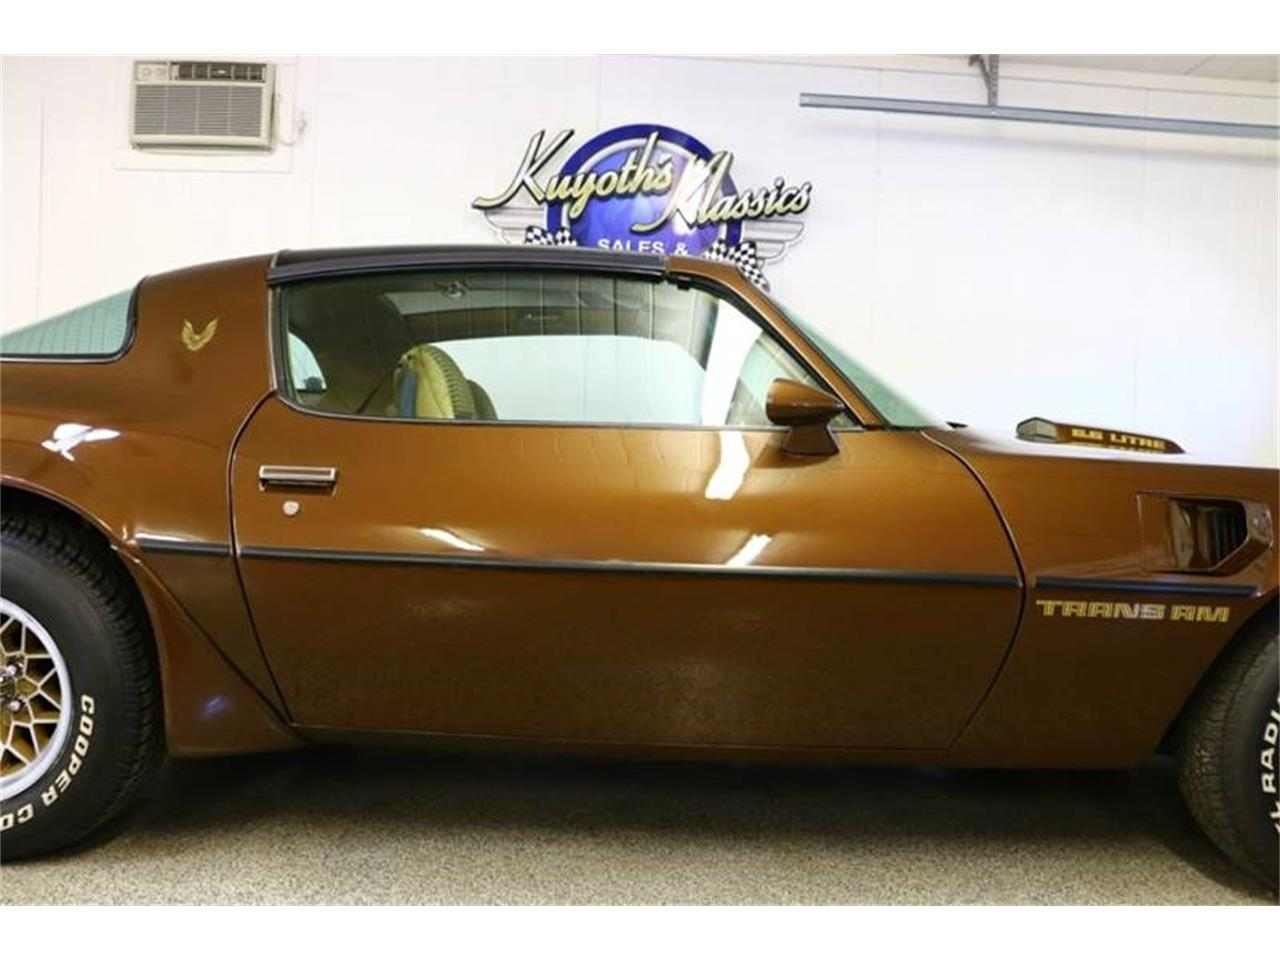 1979 Pontiac Firebird Trans Am for sale in Stratford, WI – photo 41